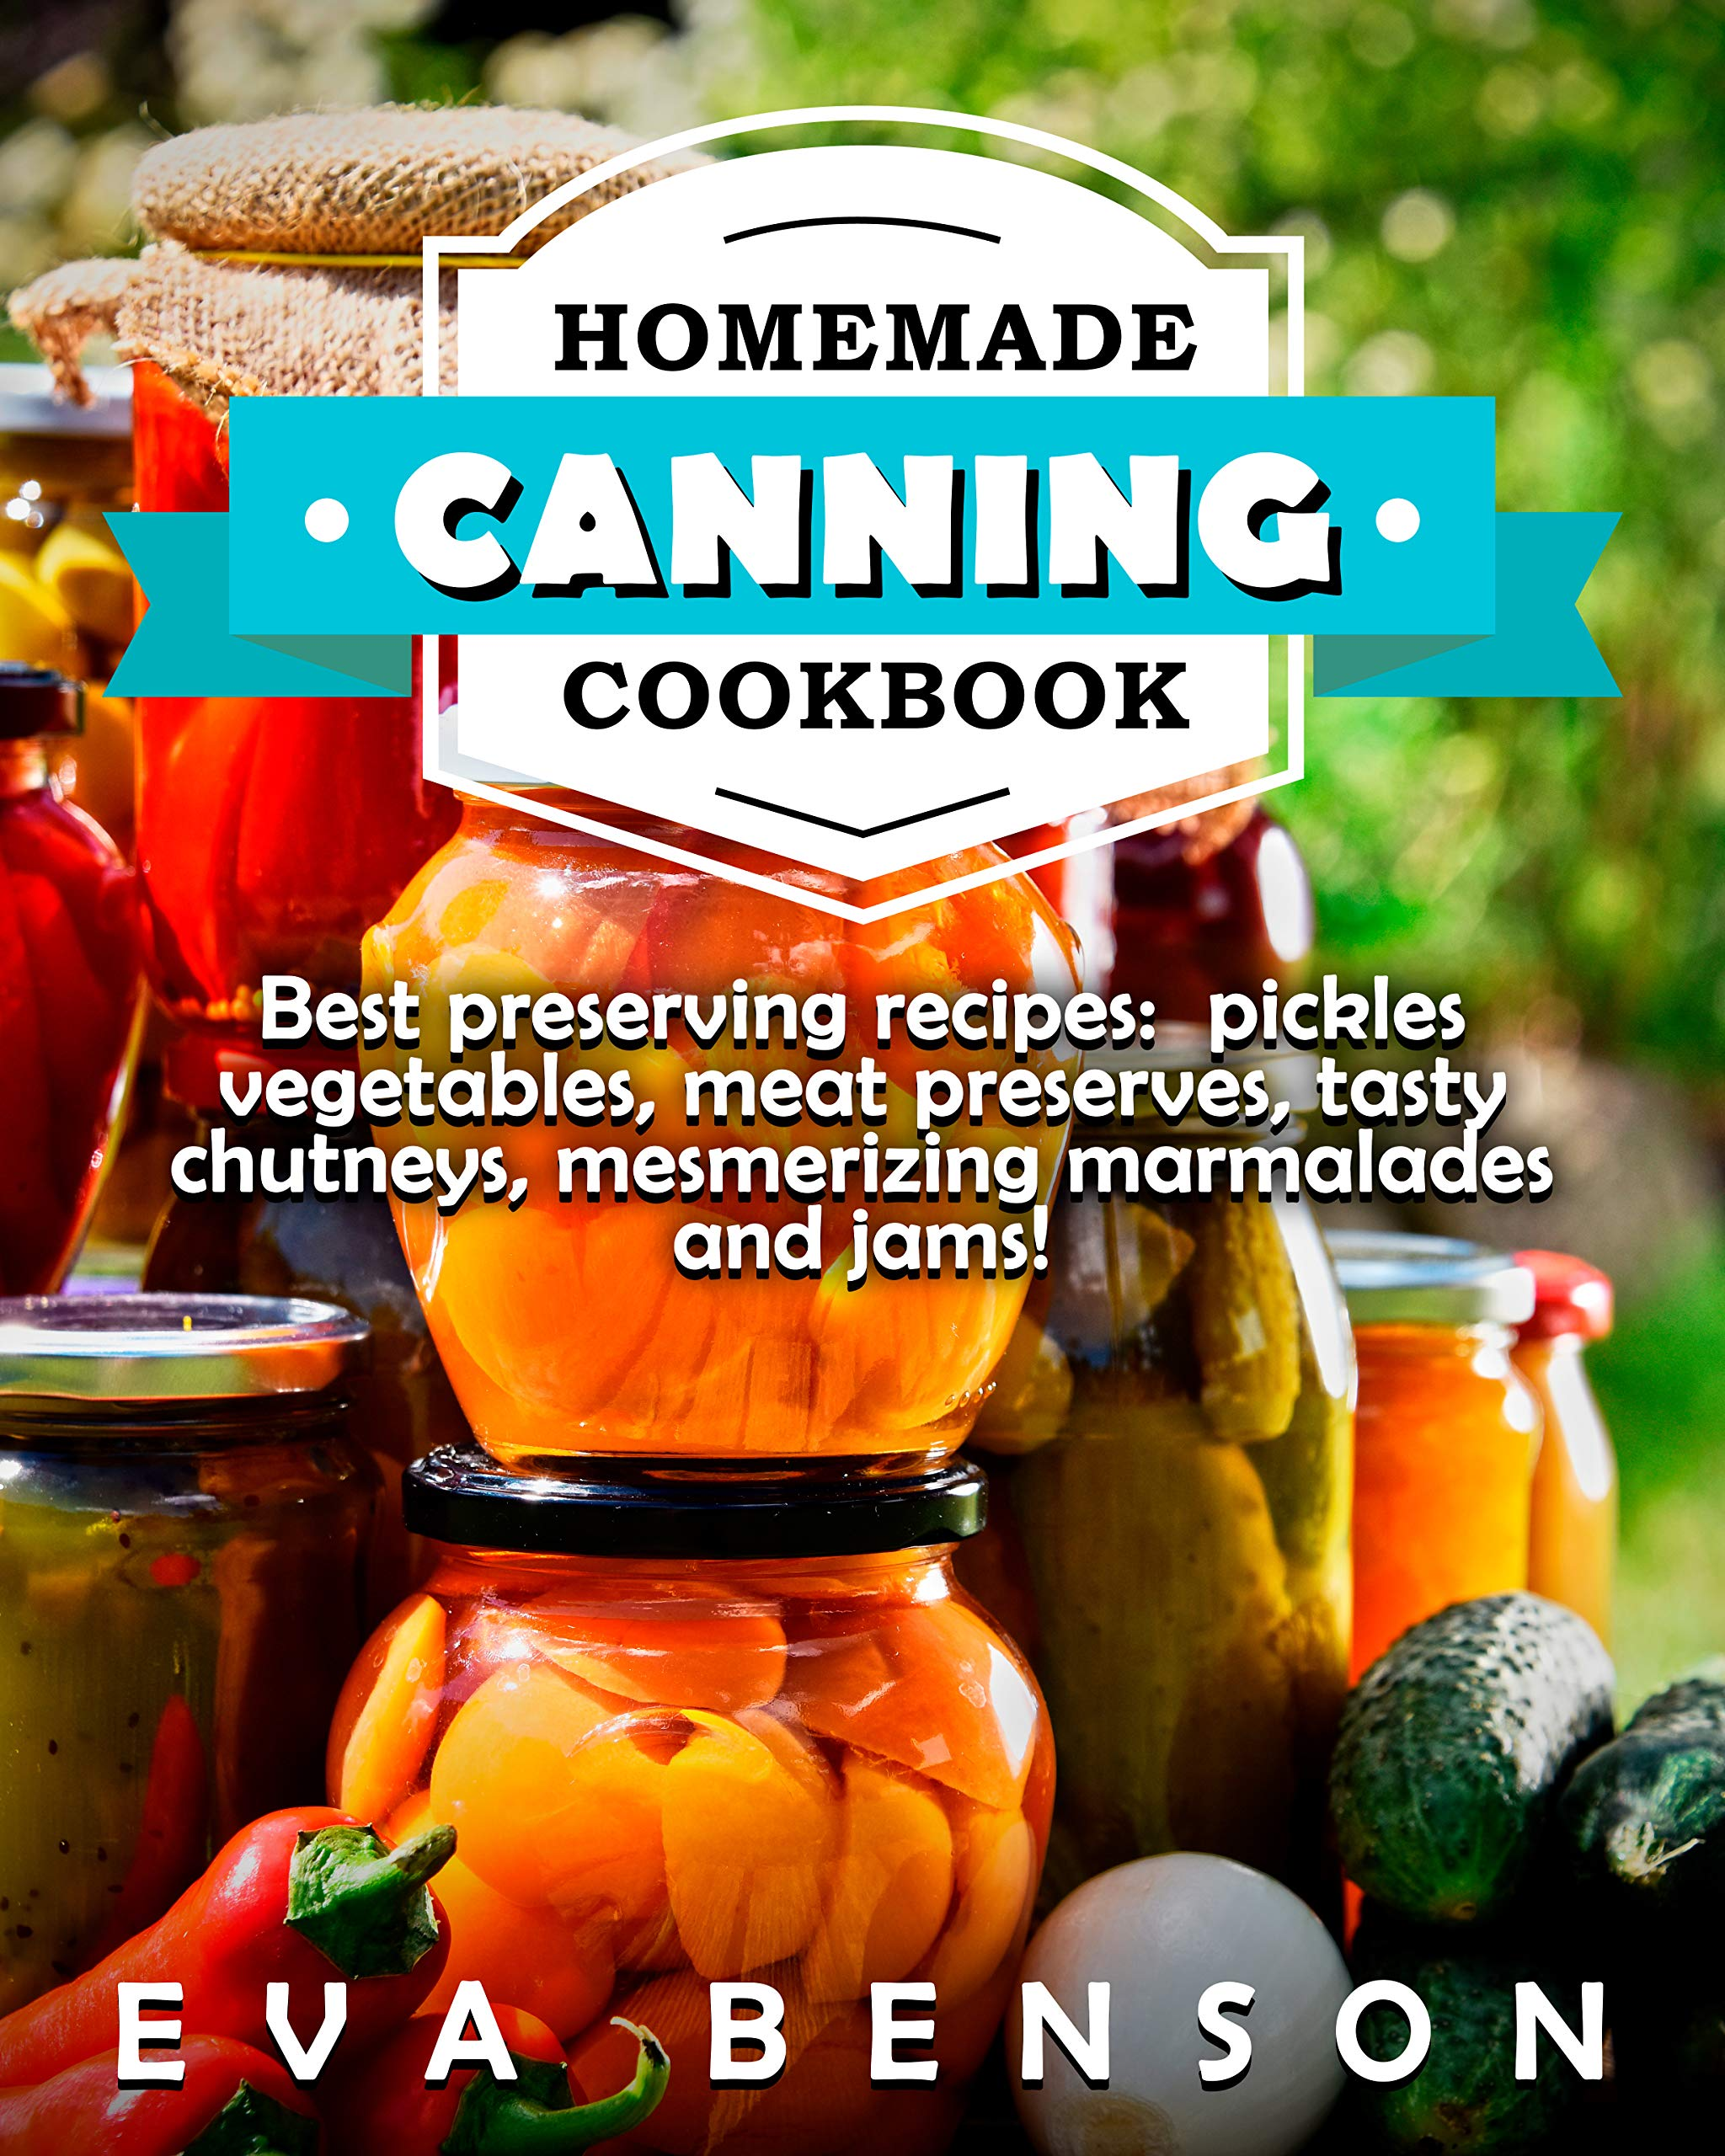 Image OfHomemade Canning Cookbook.: Best Preserving Recipes: Pickles Vegetables, Meat Preserves, Tasty Chutneys, And Mesmerizing M...